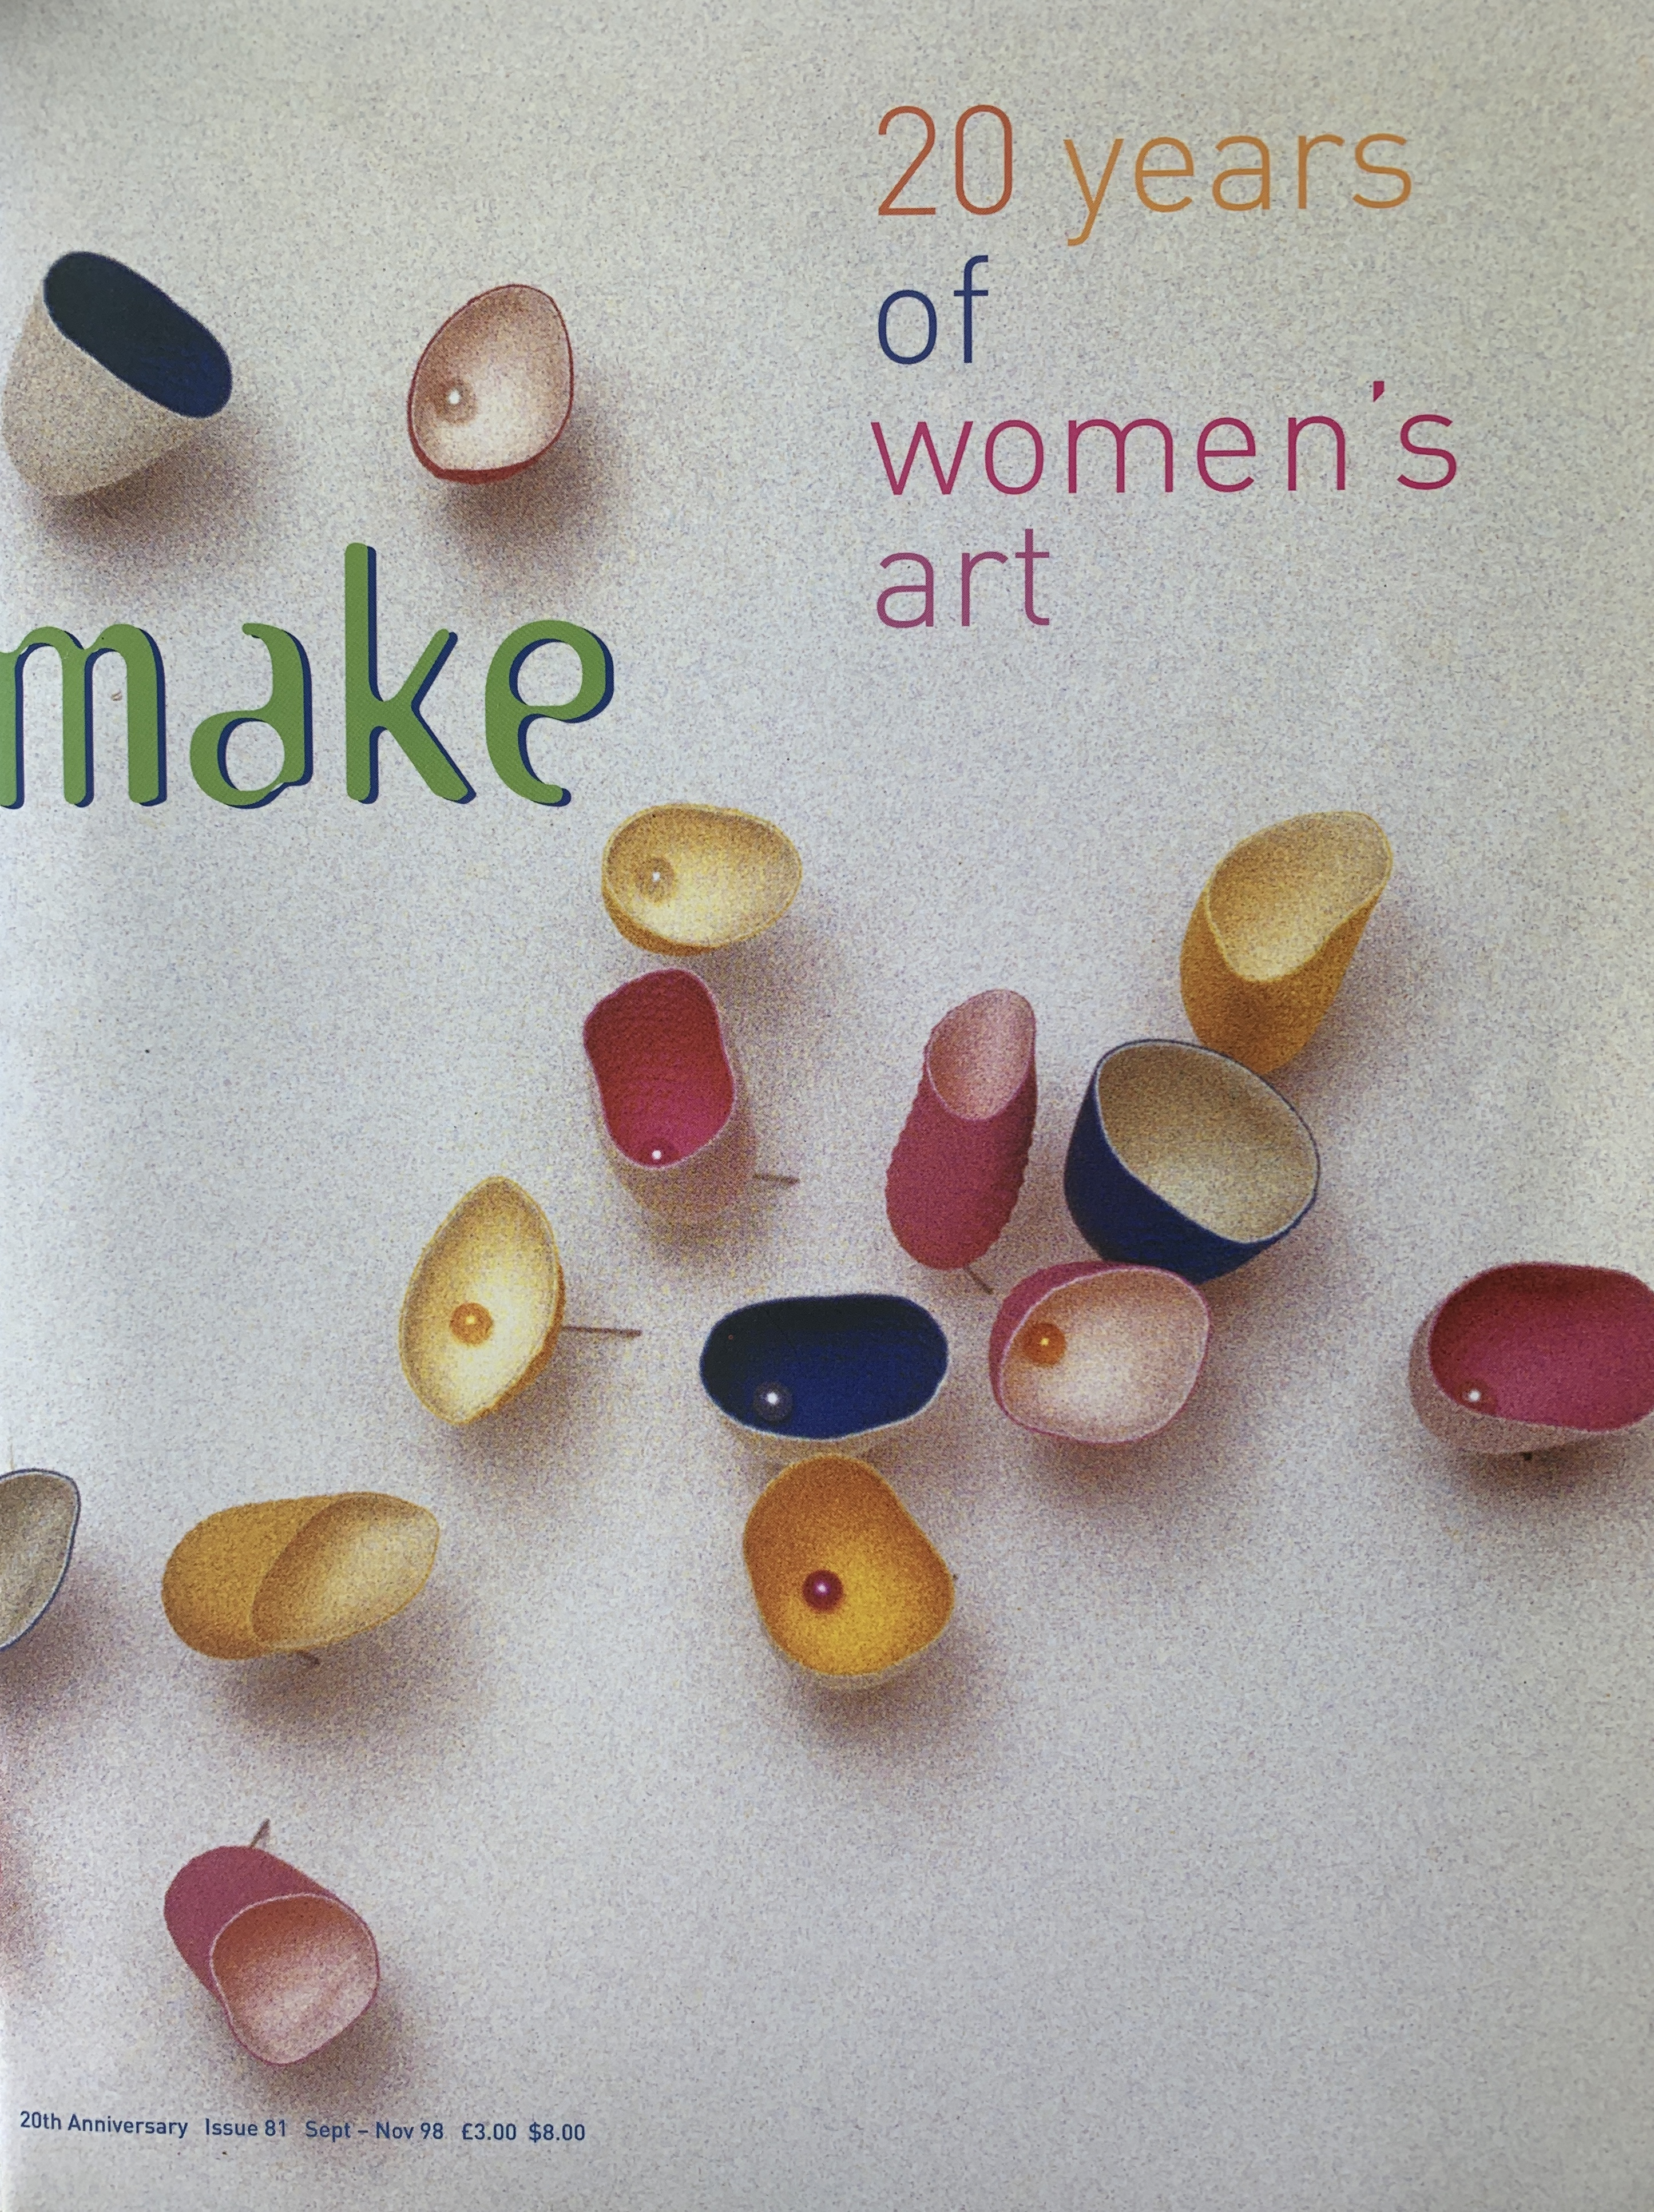 Make: The Magazine Of Women's Art Guest Editor, 1998, 20 Year Review